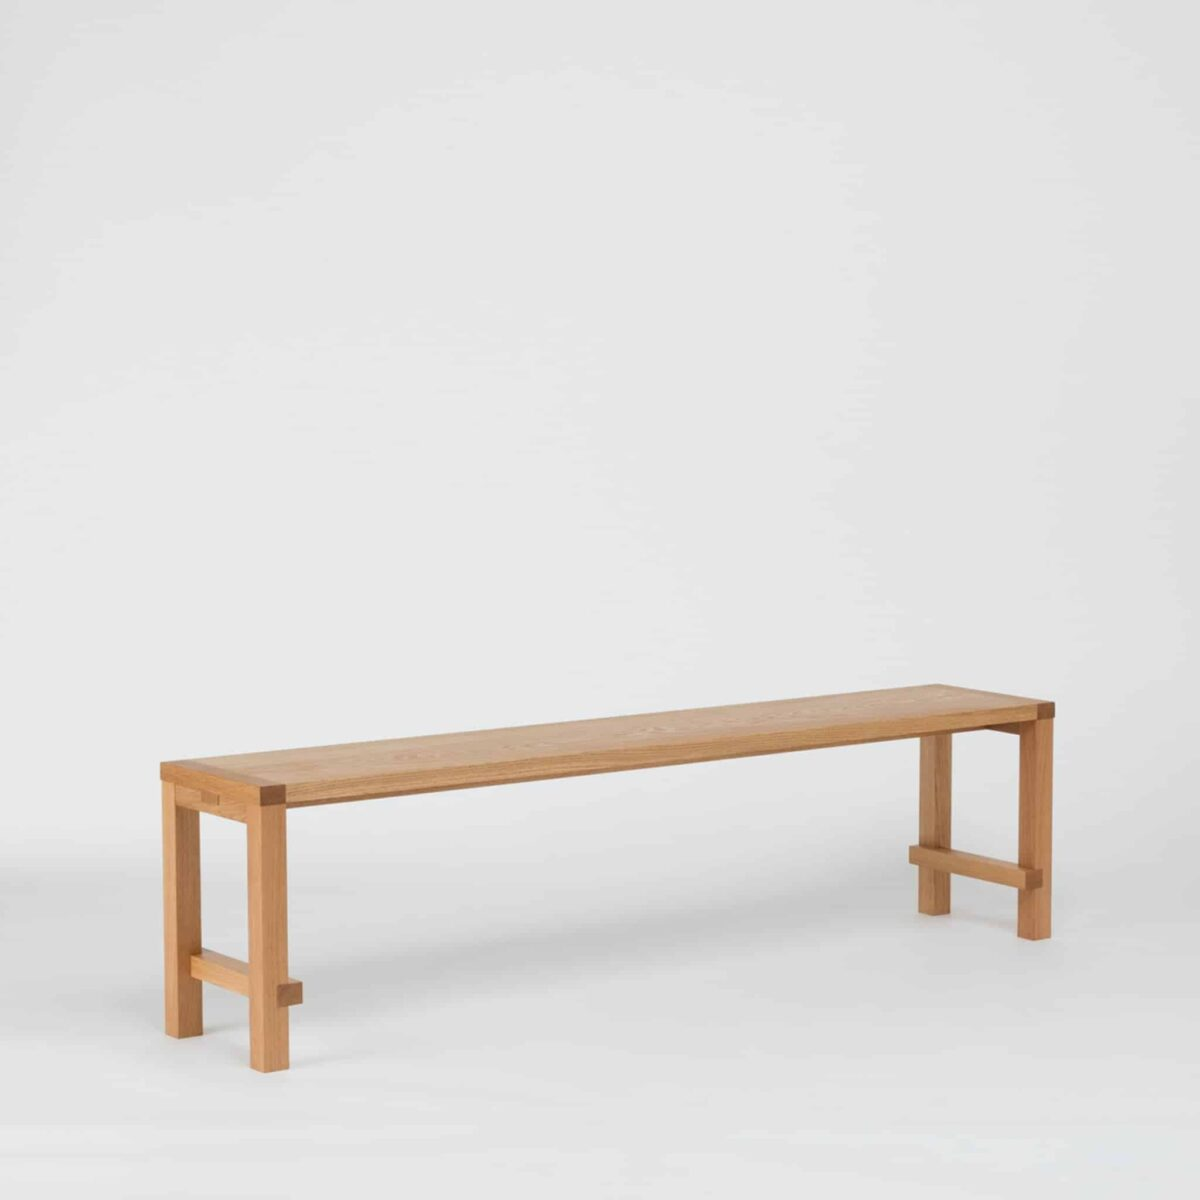 series-four-4-bench-another-country-005